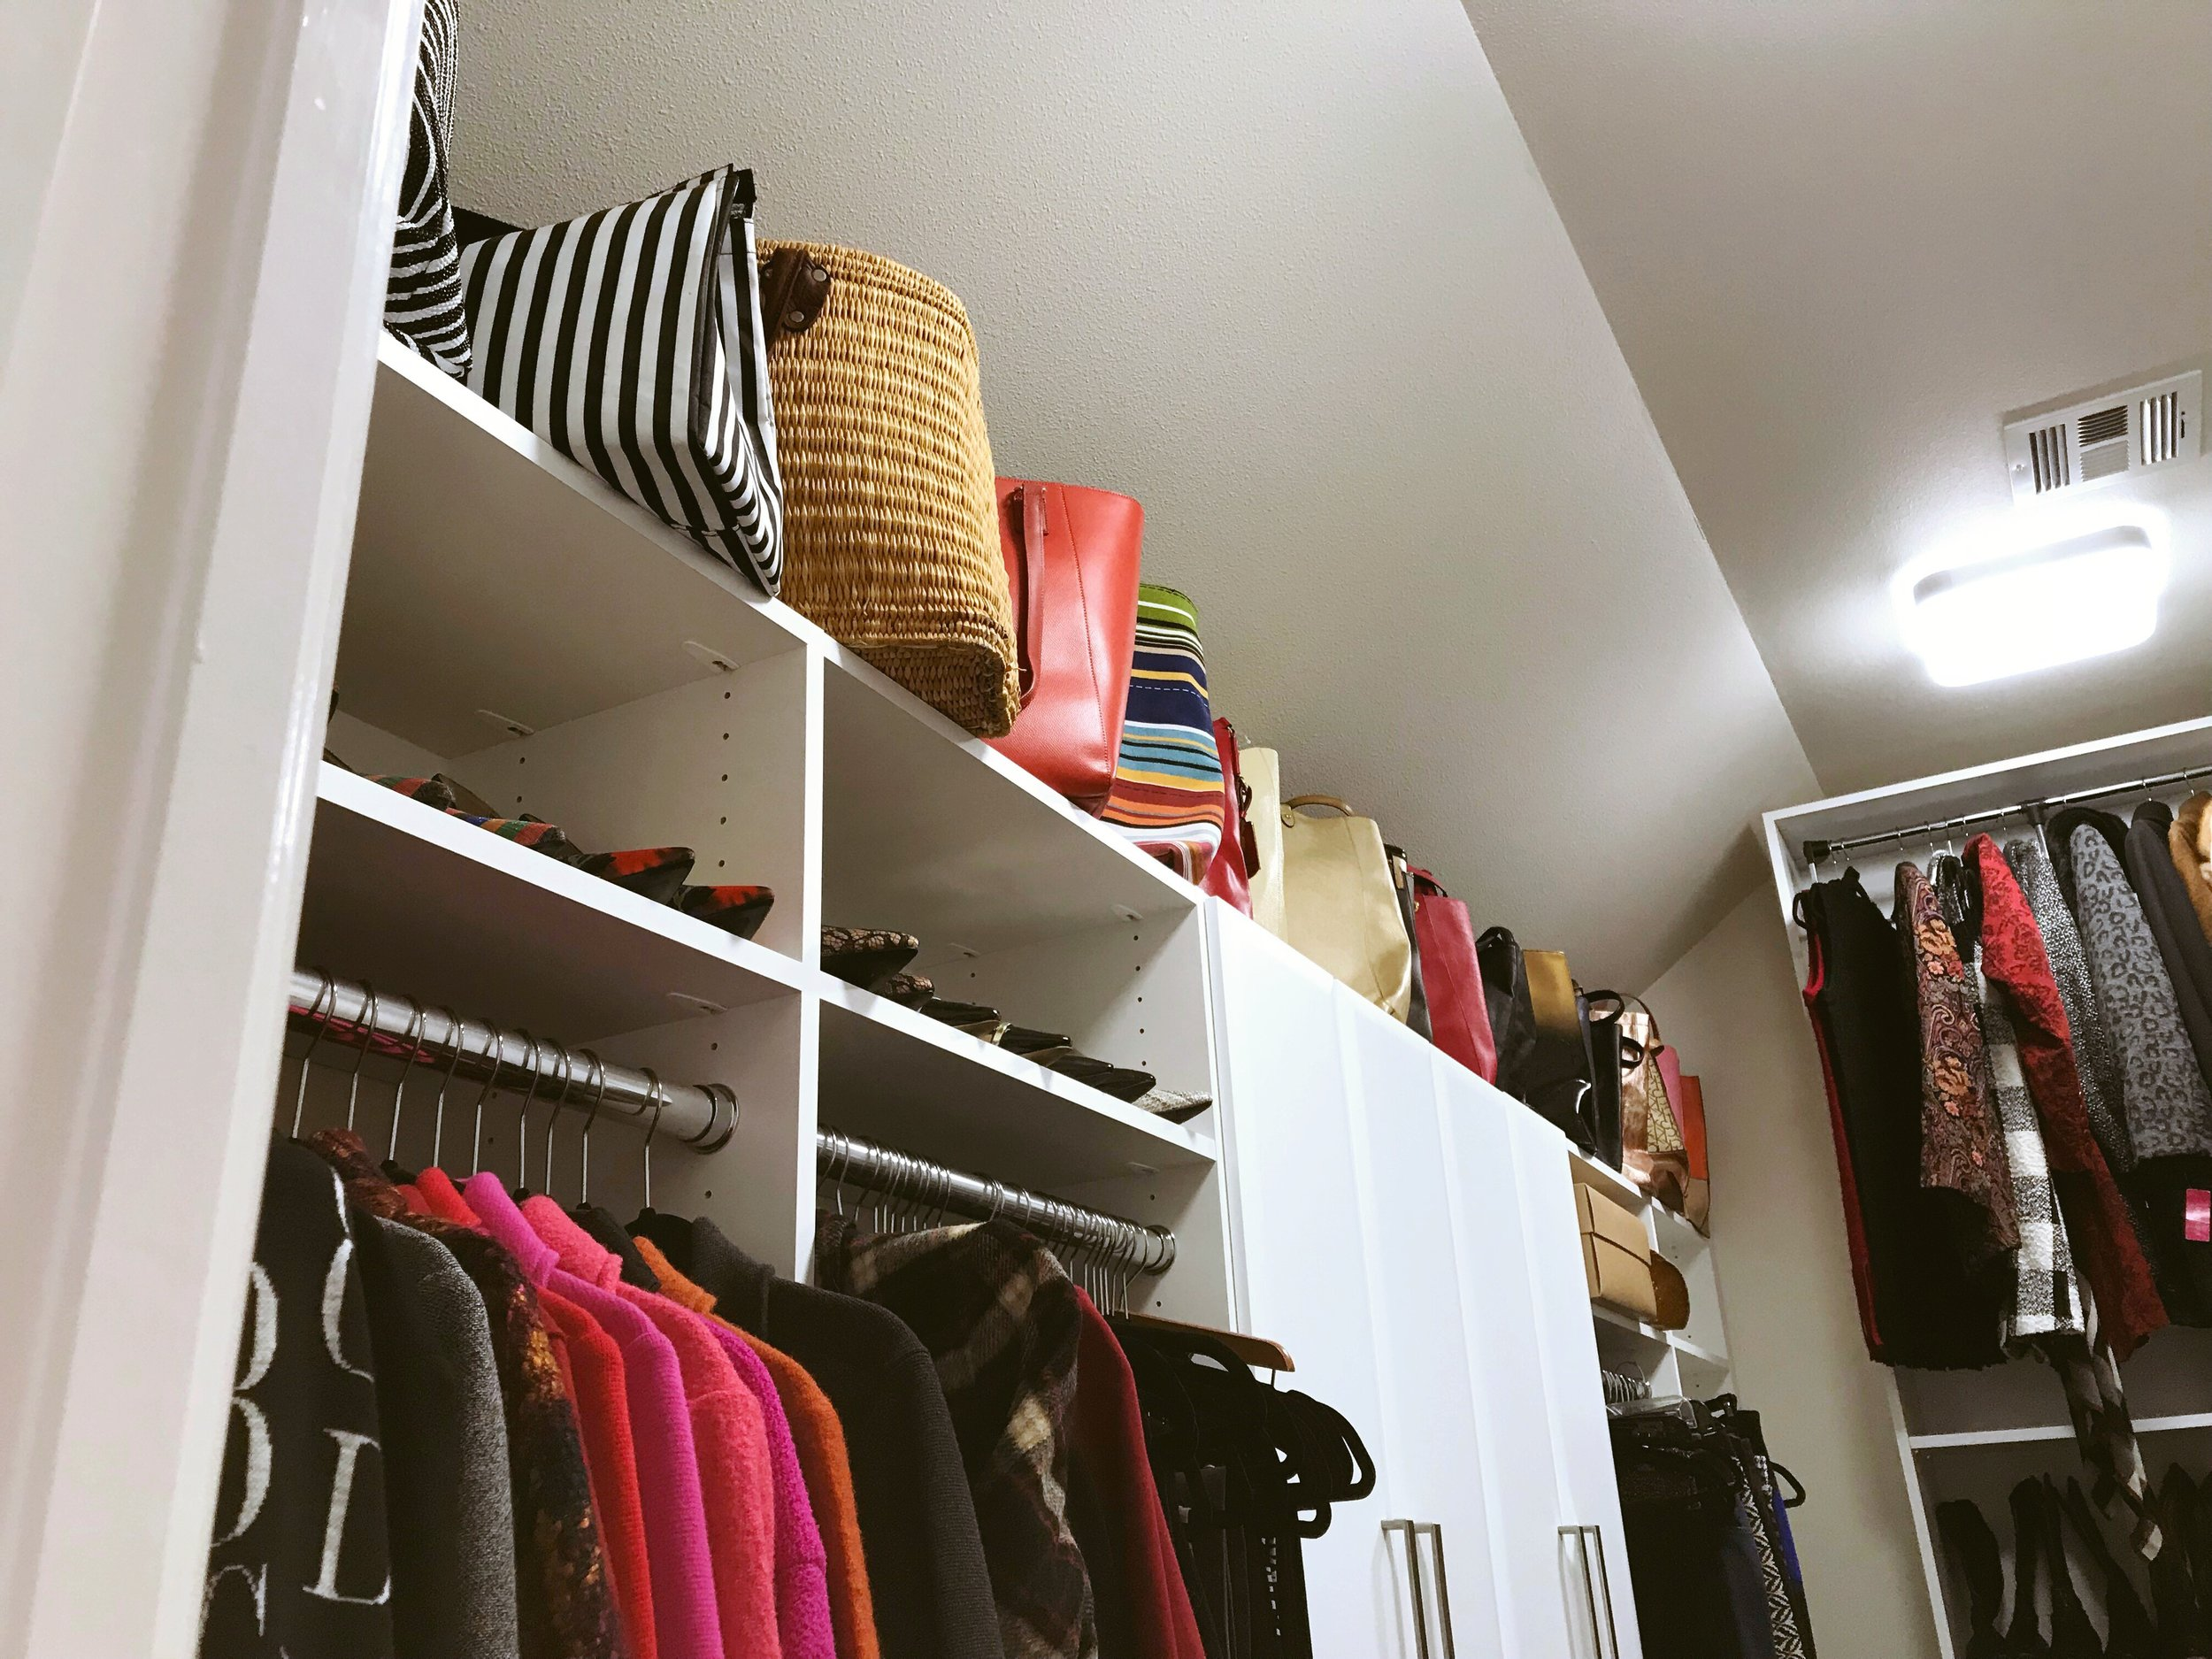 This custom closet organizer by Closets of Tulsa maximizes vertical storage so no space goes to waste.  Call Closets of Tulsa  today for your FREE consultation and 3-D closet and garage design:  918.609.0214